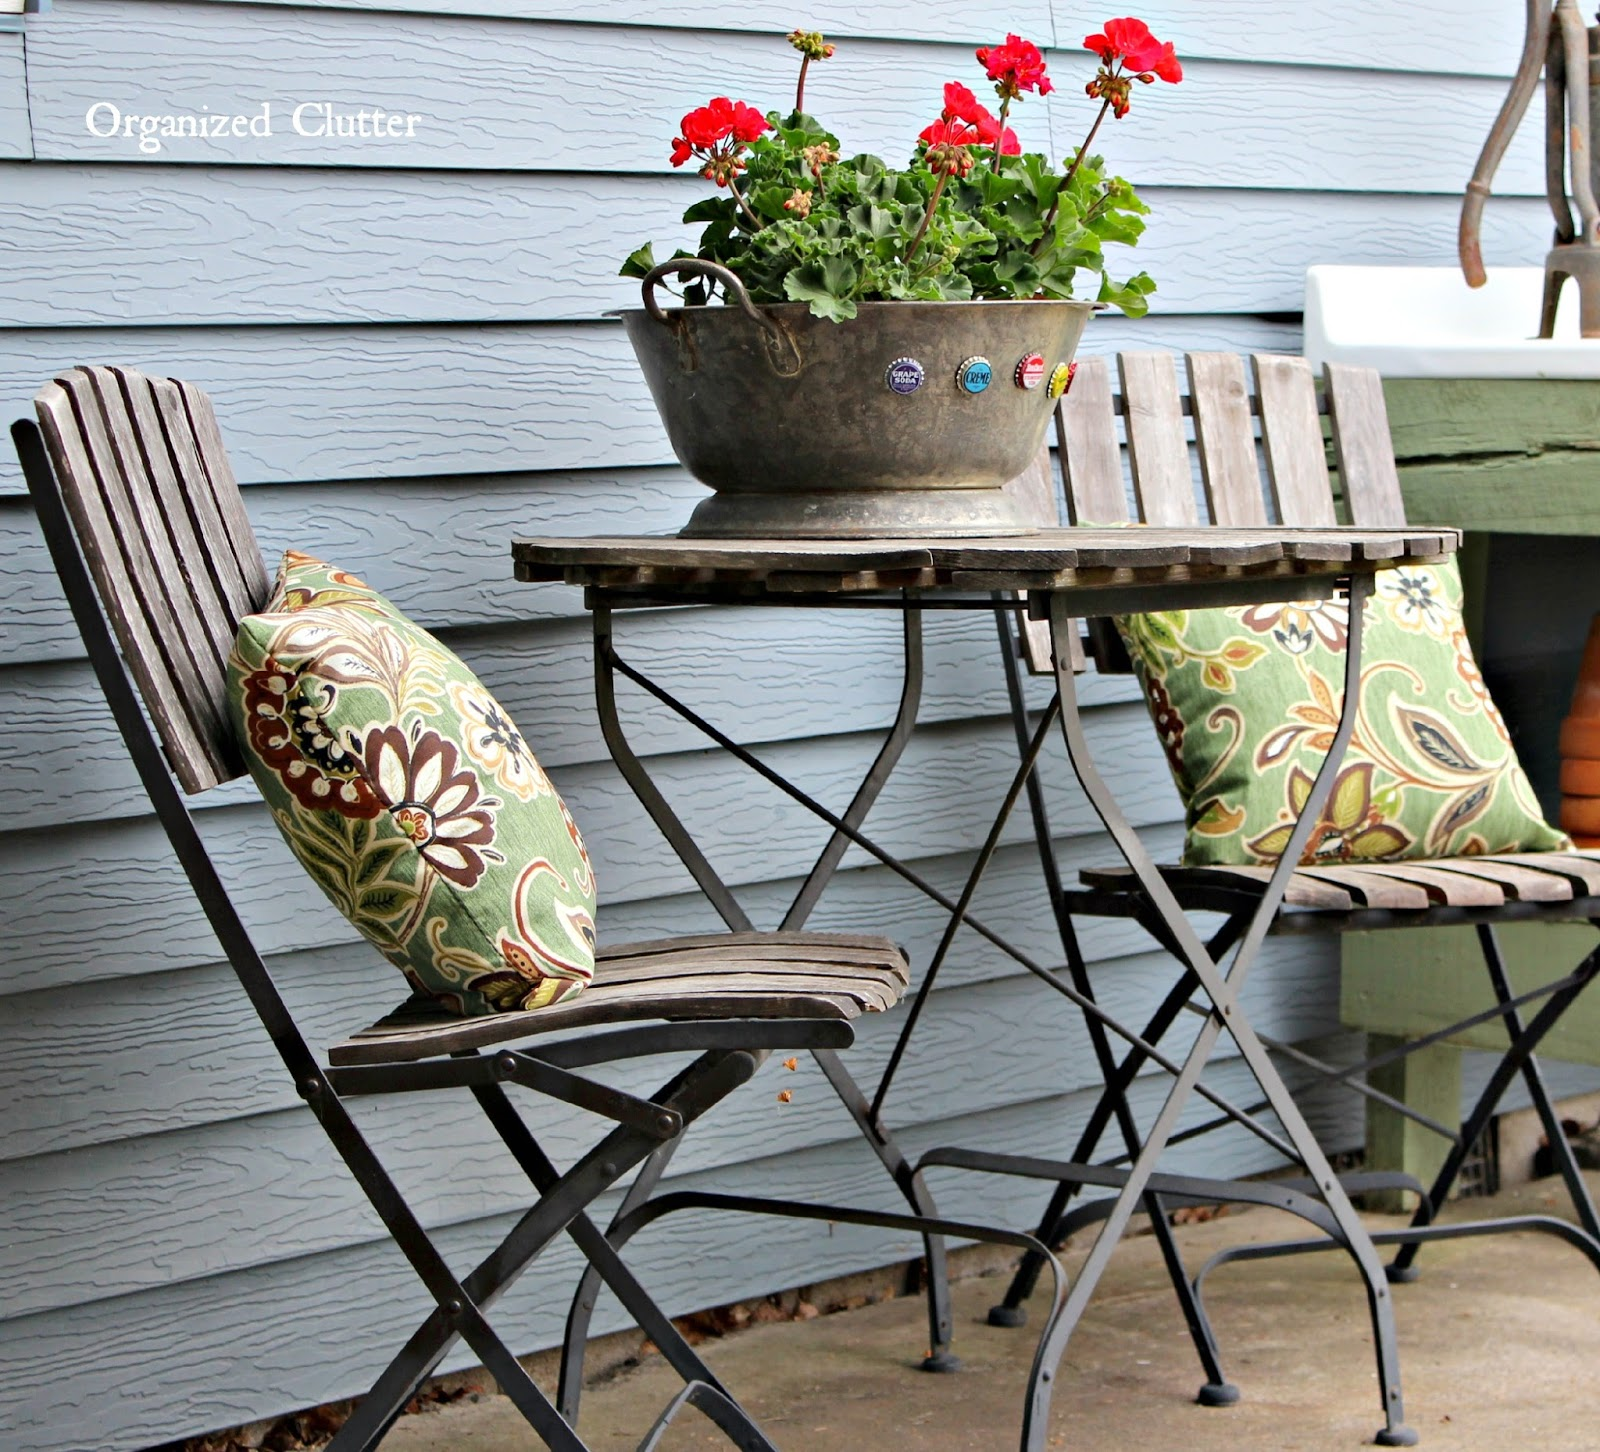 New Decorating the Patio with Vintage Finds u Garage Sale Furniture organizedclutter net